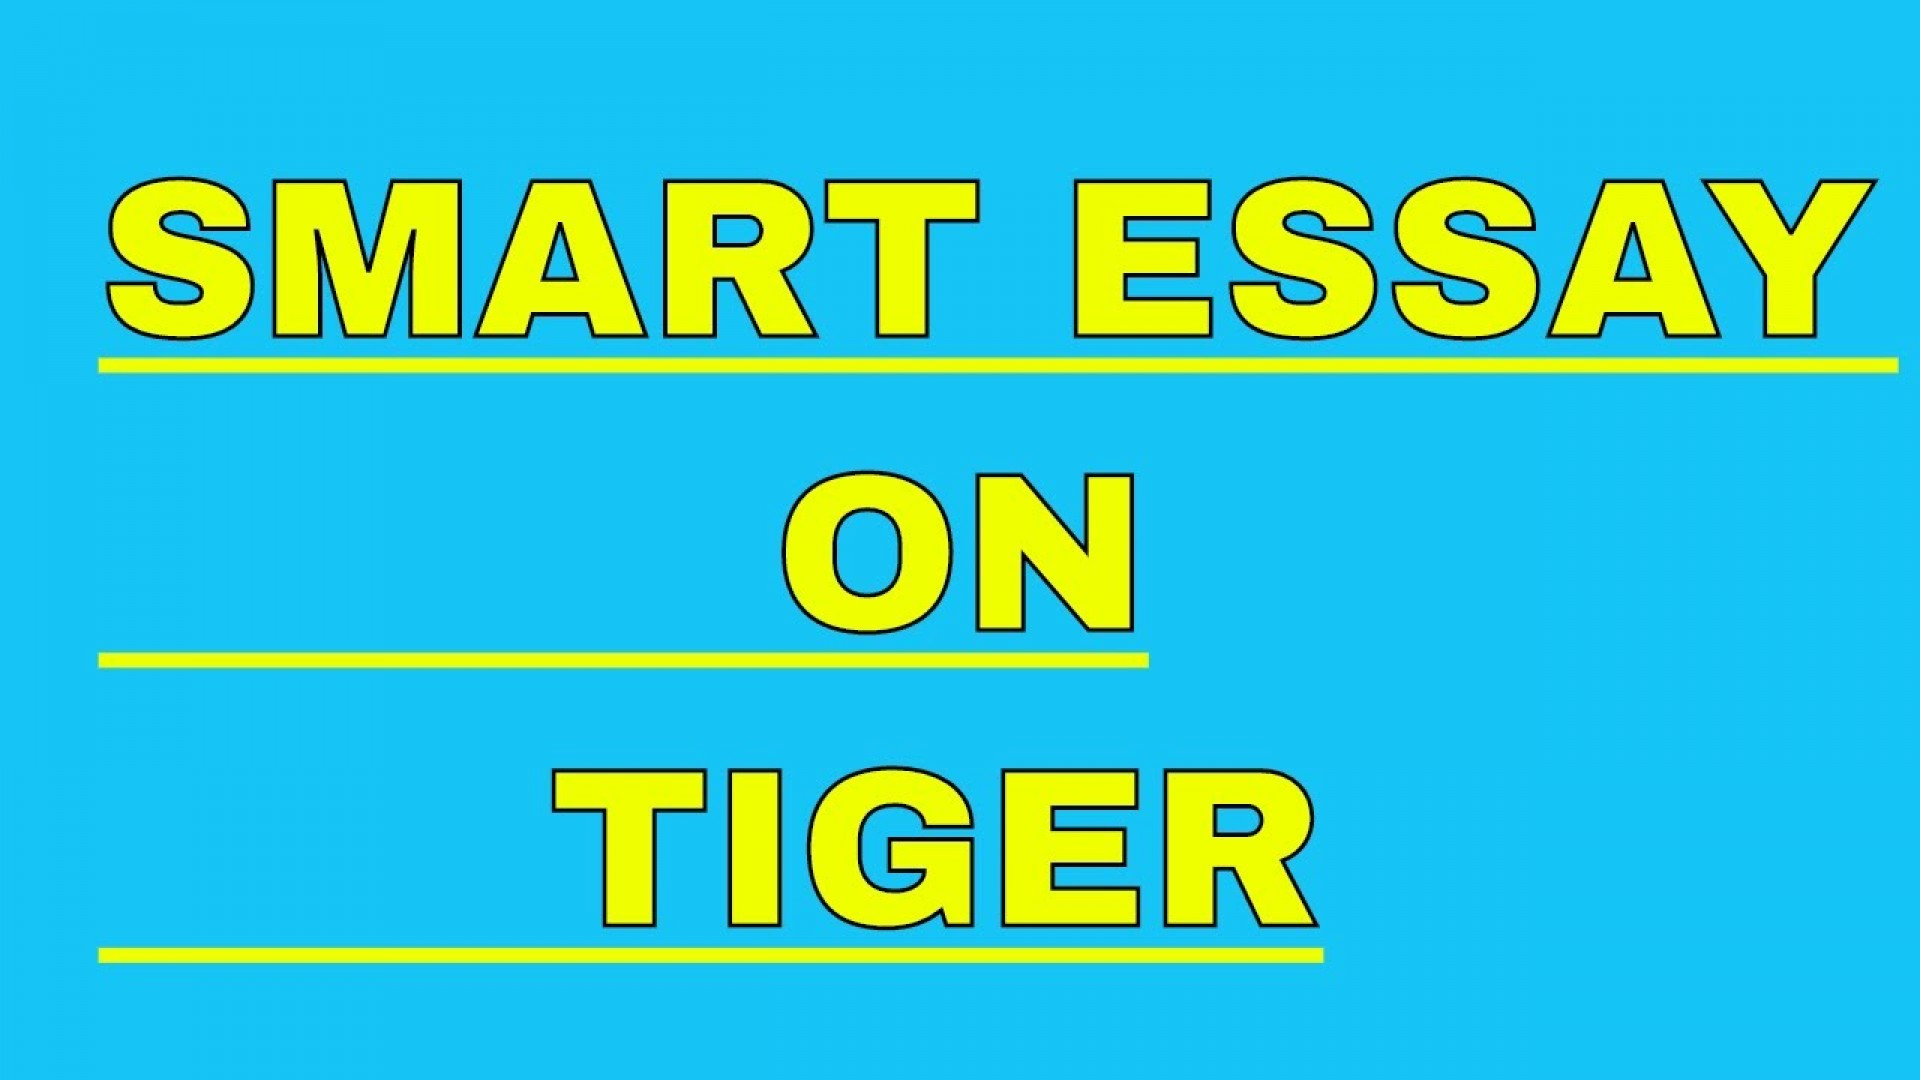 002 Essay Example On Tiger Astounding Shroff Hindi For Class 1 National Animal In 1920